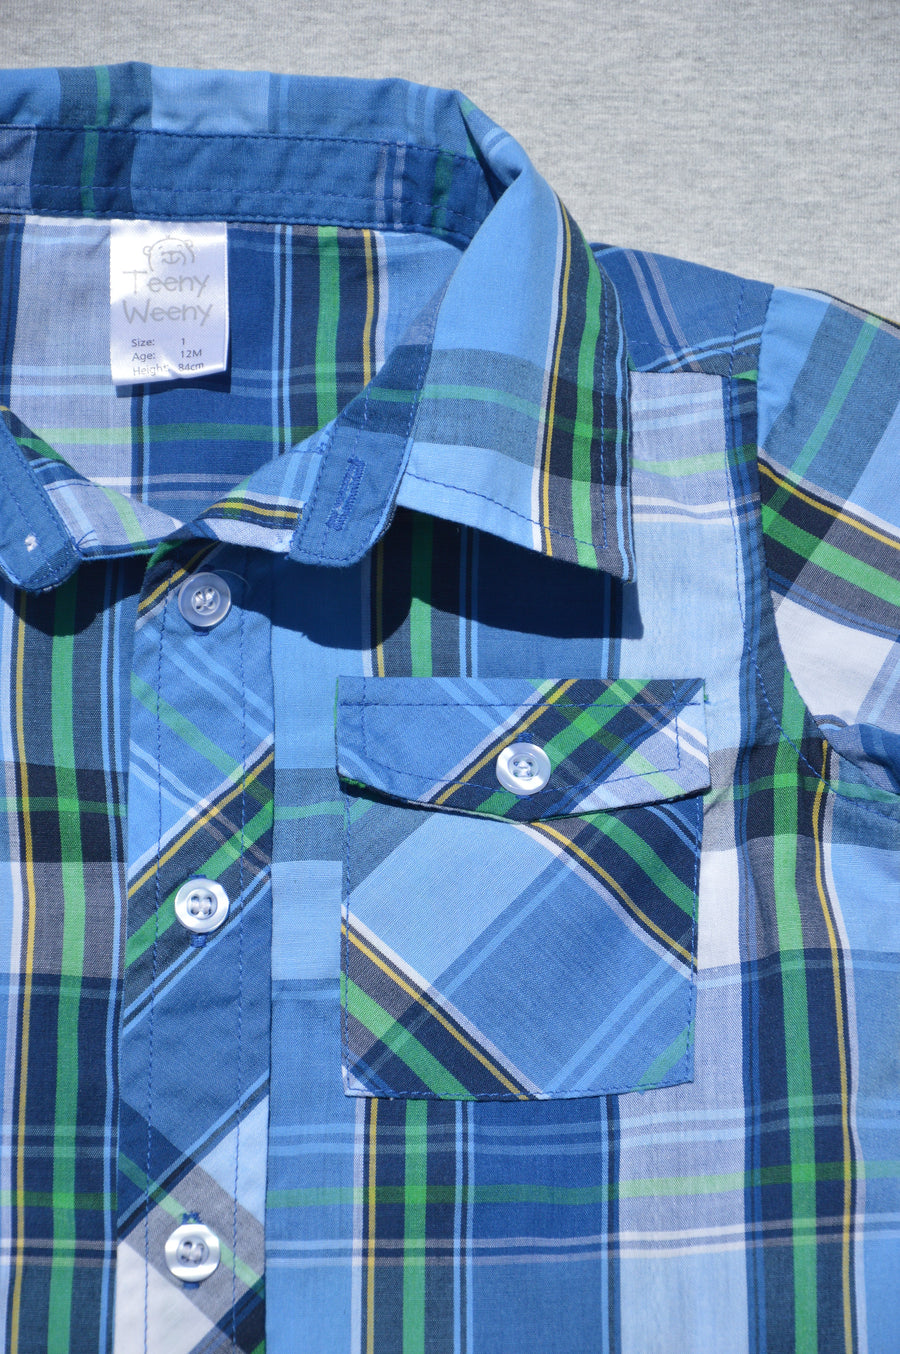 Teeny Weeny - nearly new - blue, green & white checked short-sleeved shirt, size 12m